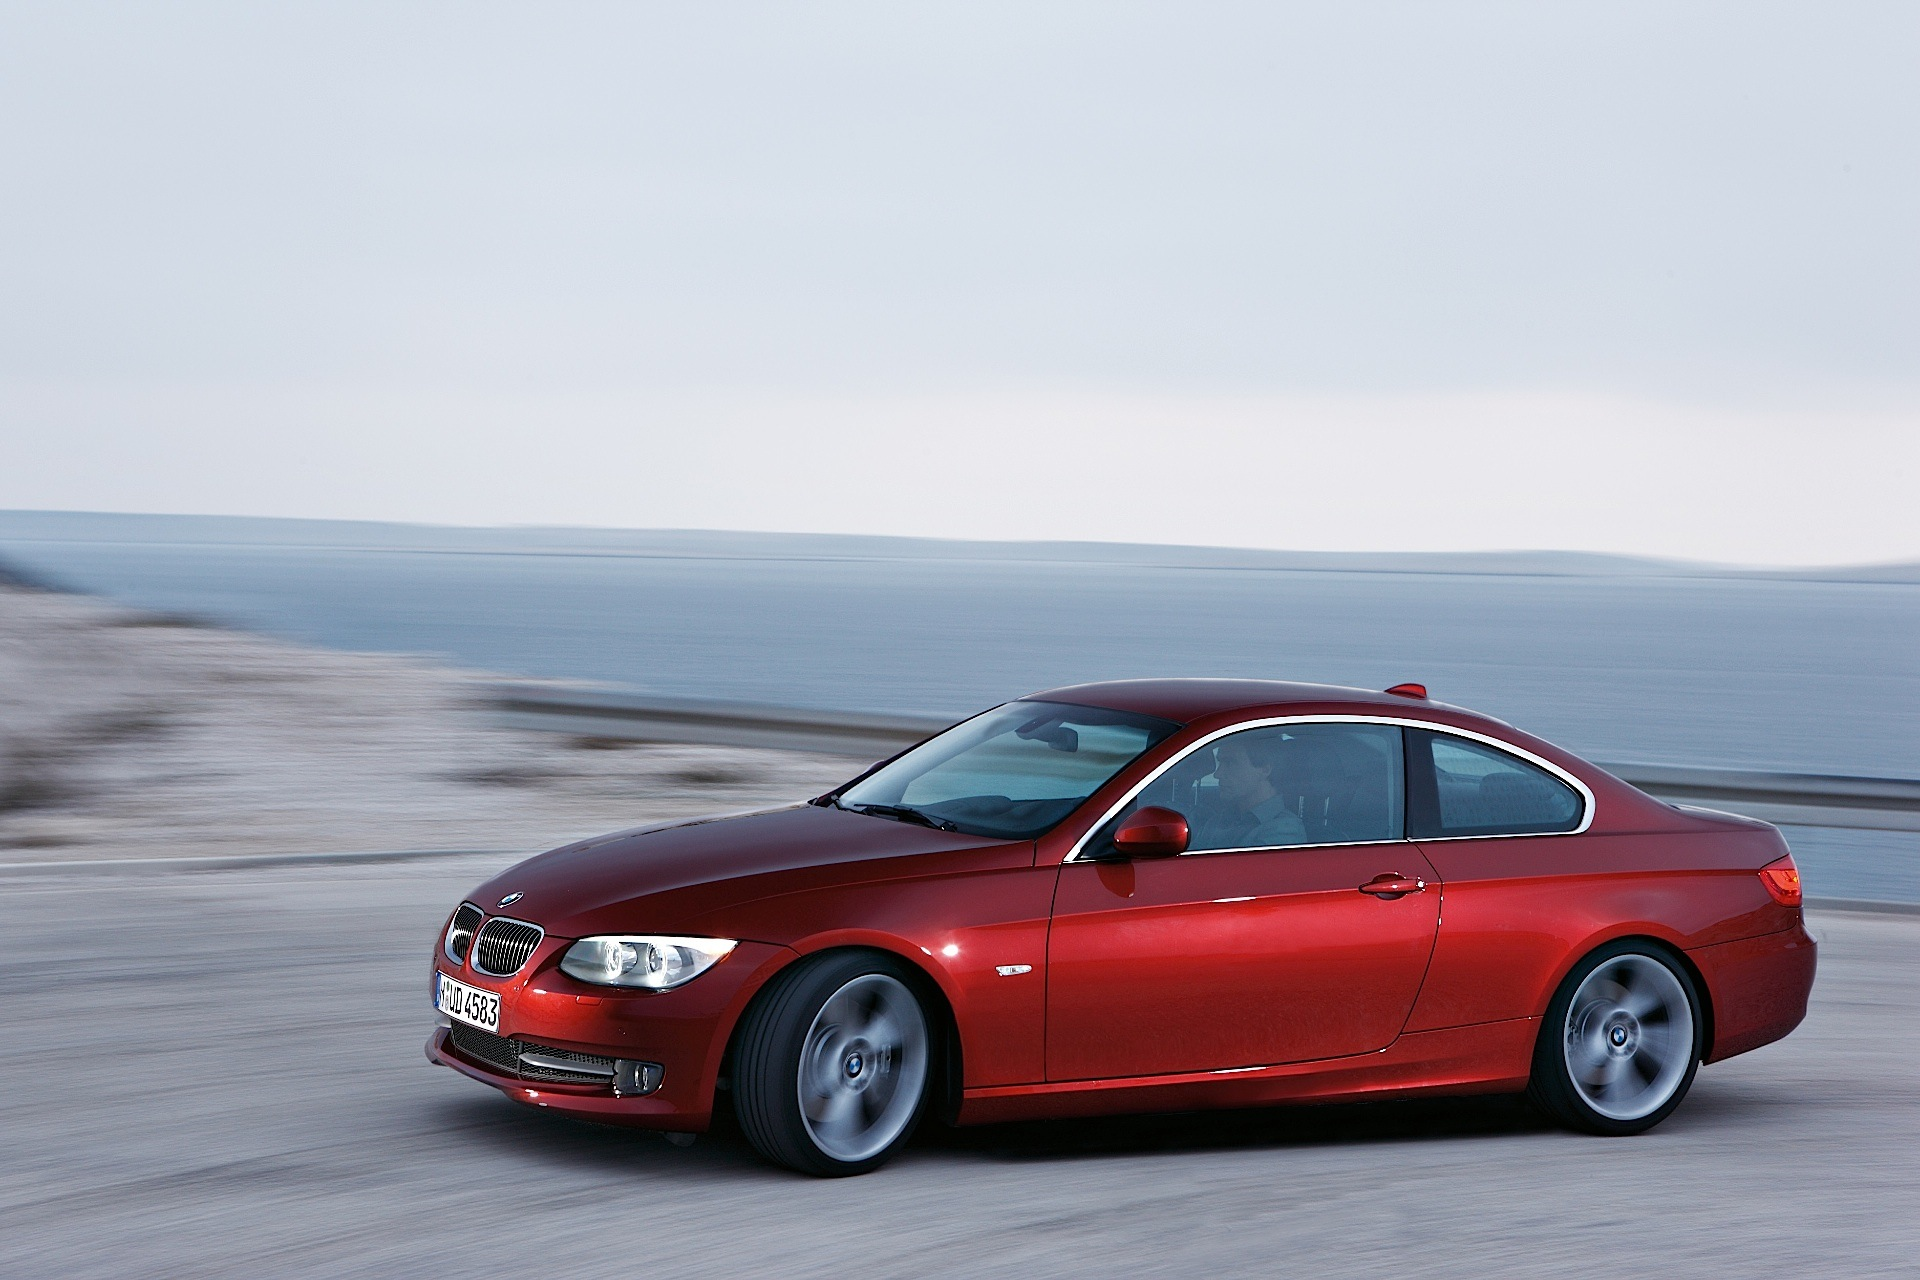 bmw 3 series coupe (e92) specs - 2010, 2011, 2012, 2013